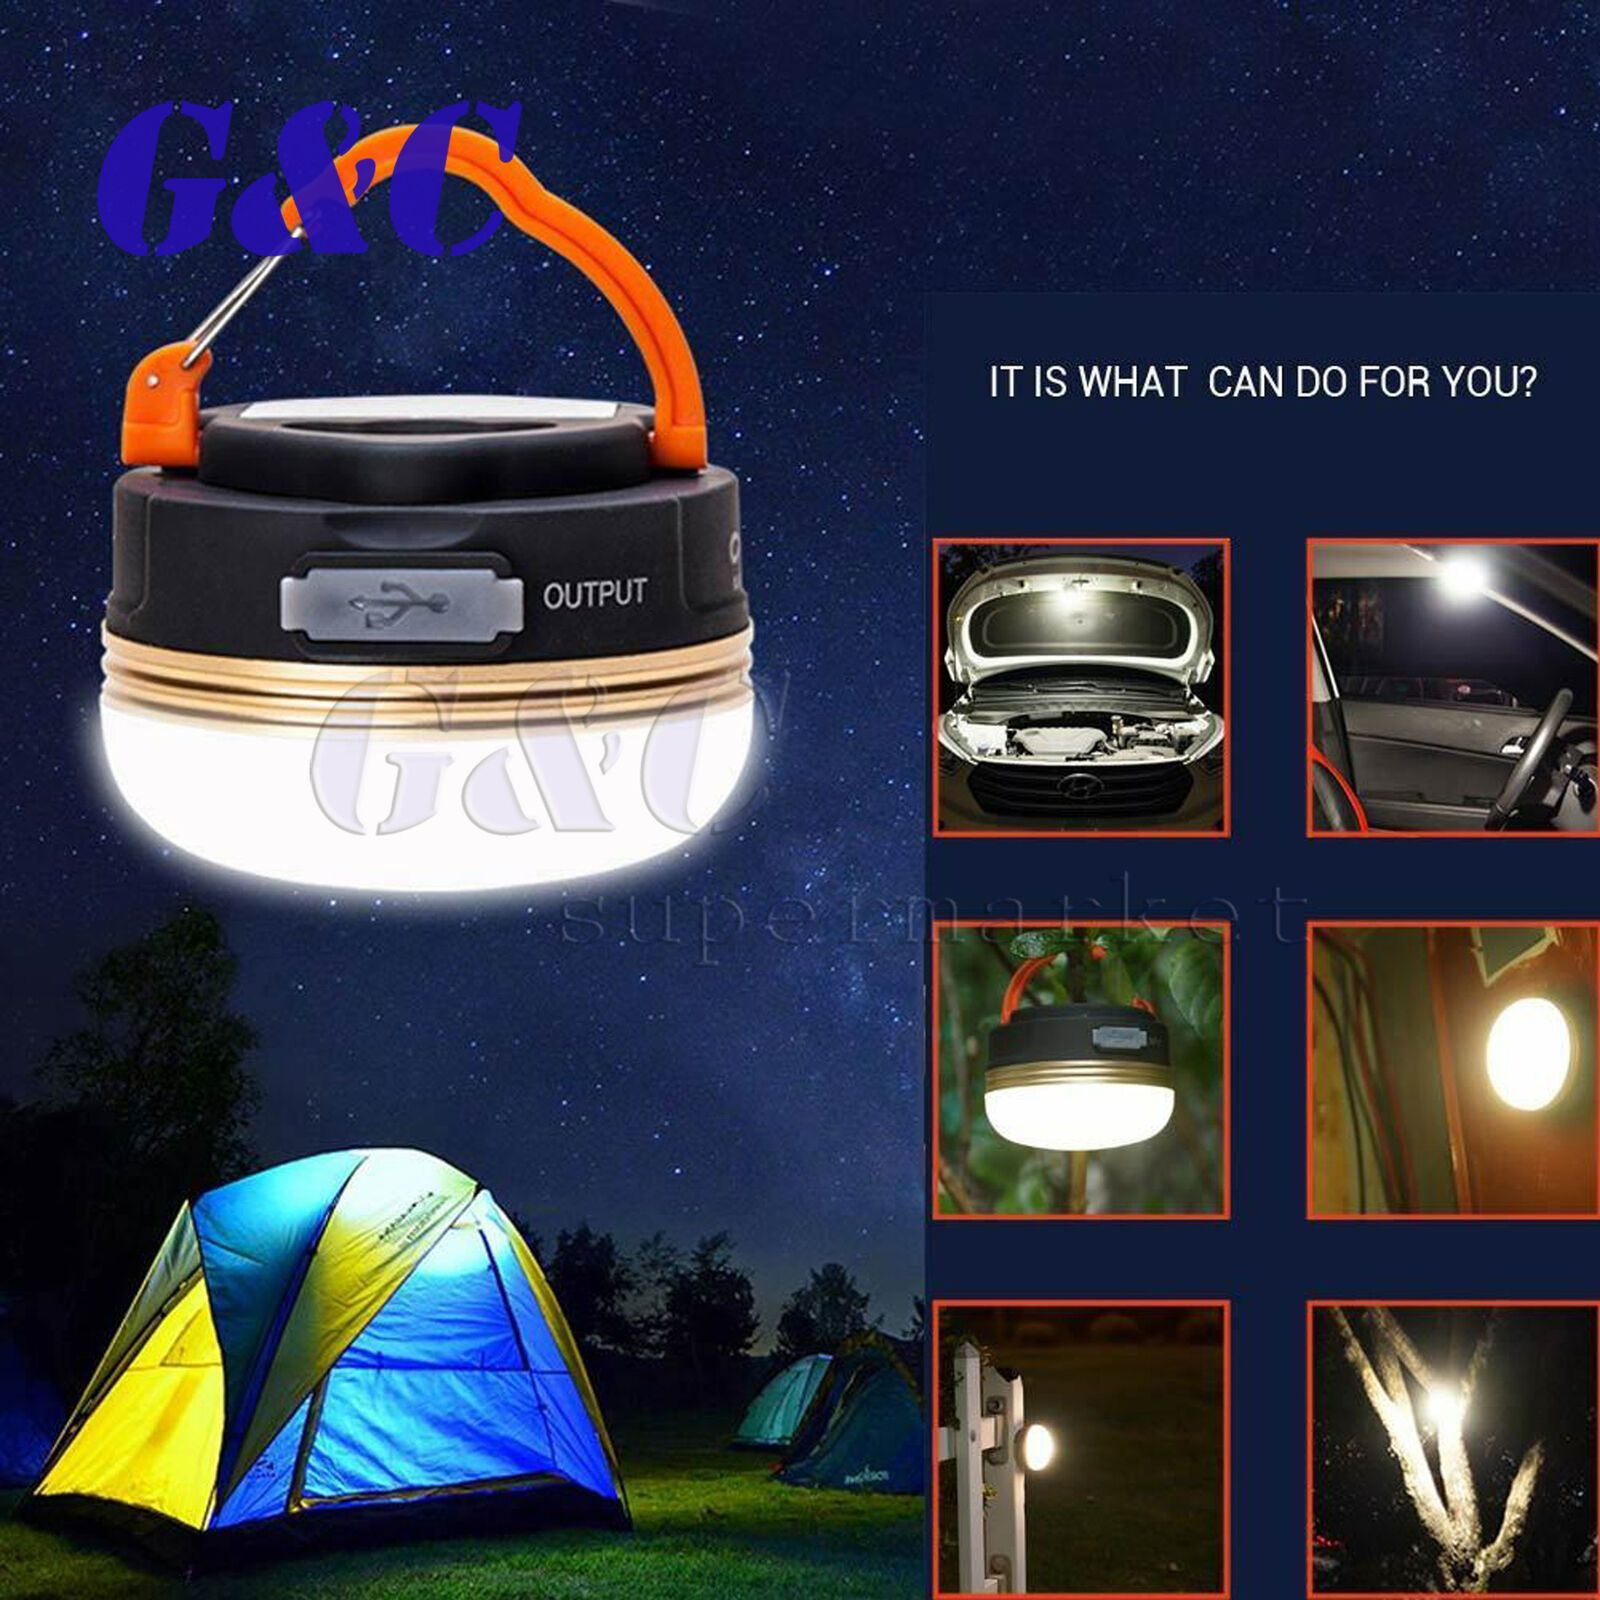 Portable Led Hiking 3w Camping Lantern Tent Fishing Lamp Light Usb Rechargeable Ebay In 2020 Led Camping Lantern Camping Lanterns Tent Lighting